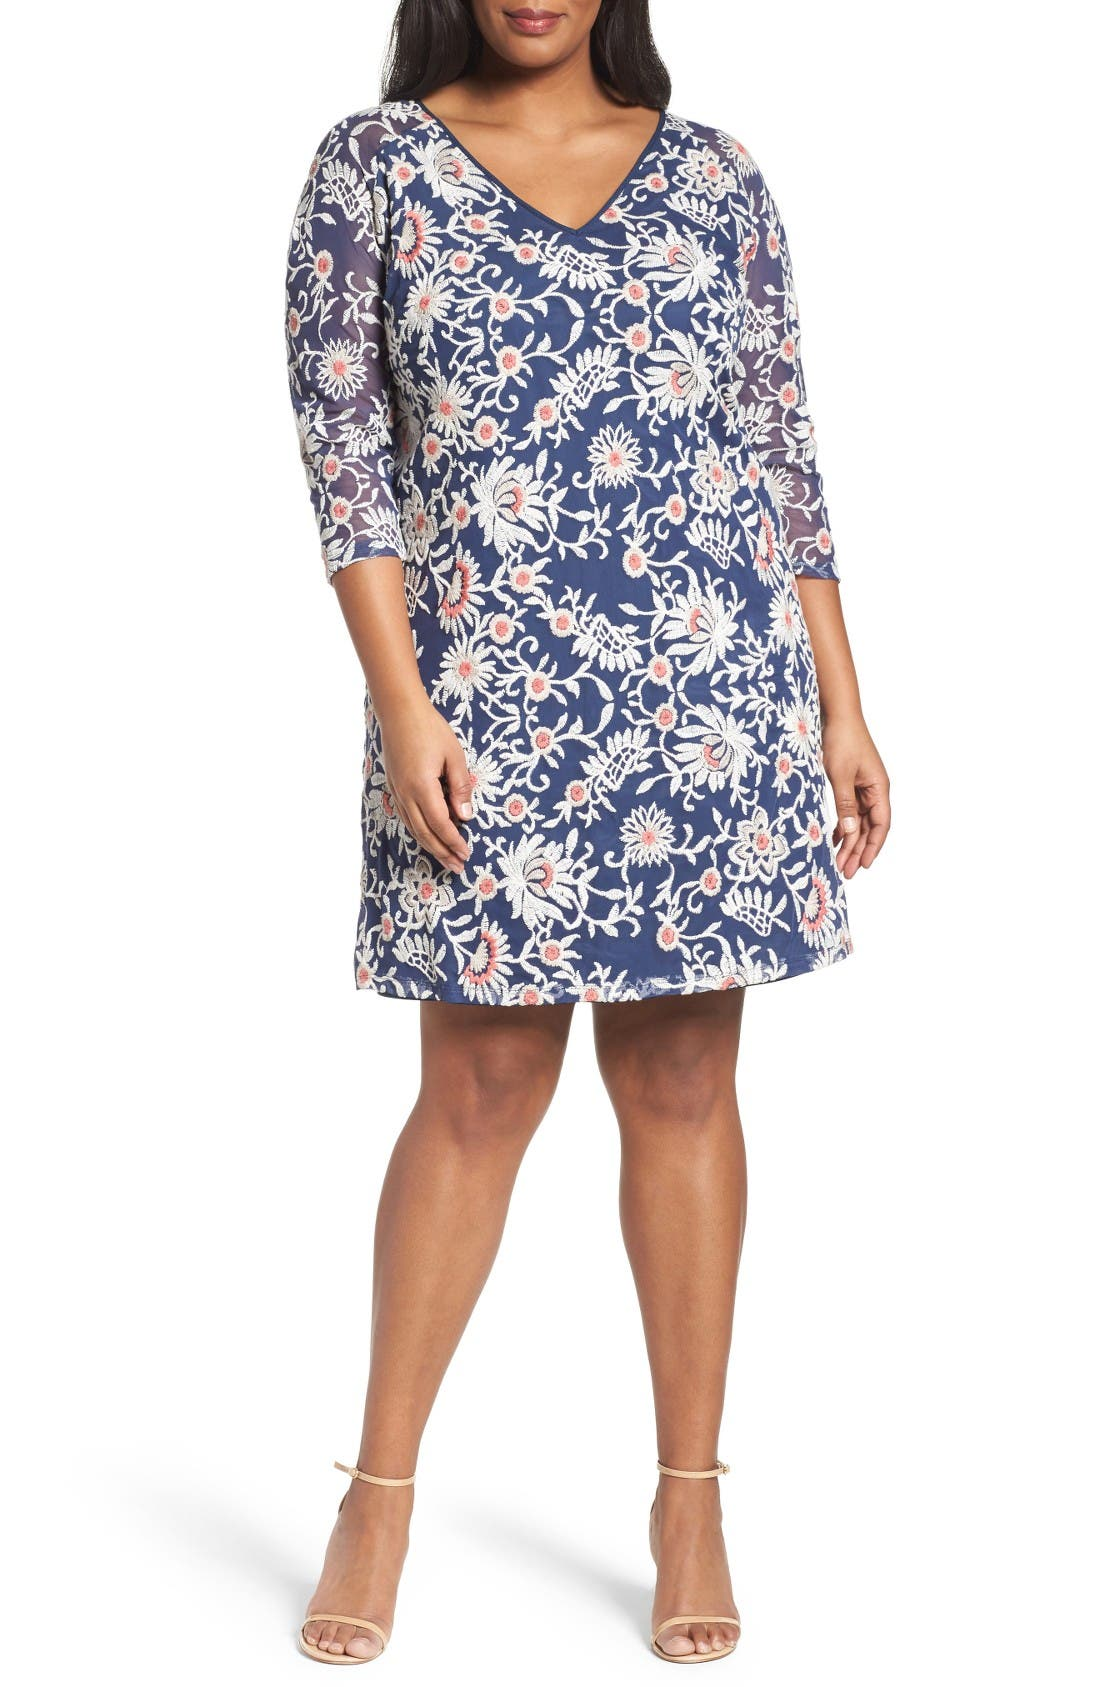 Adrianna Papell Marrakesh Embroidered Trapeze Dress (Plus Size)